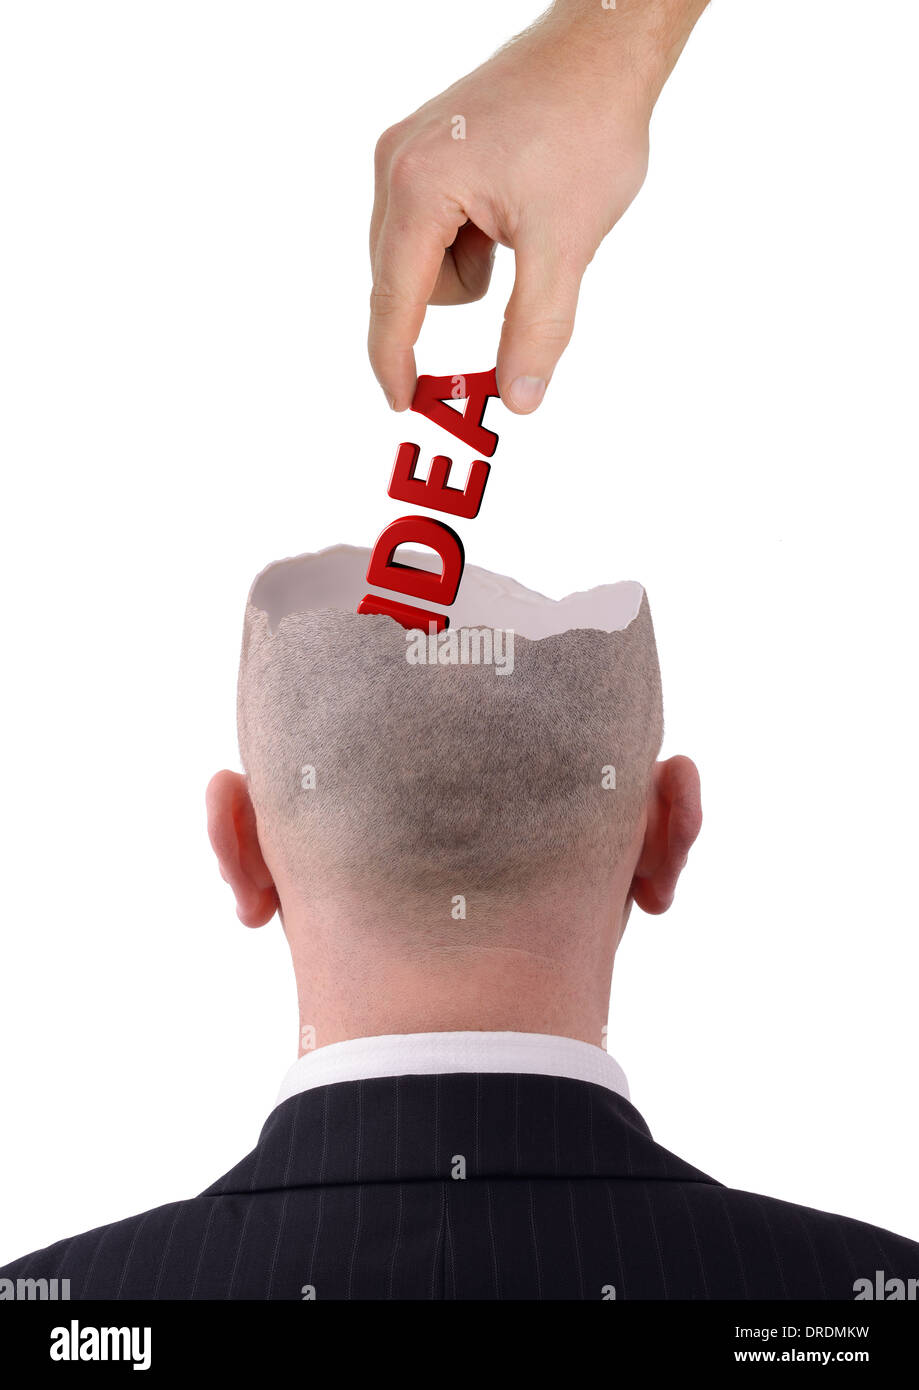 Pulling out a good idea of a head isolated on a white background - Stock Image